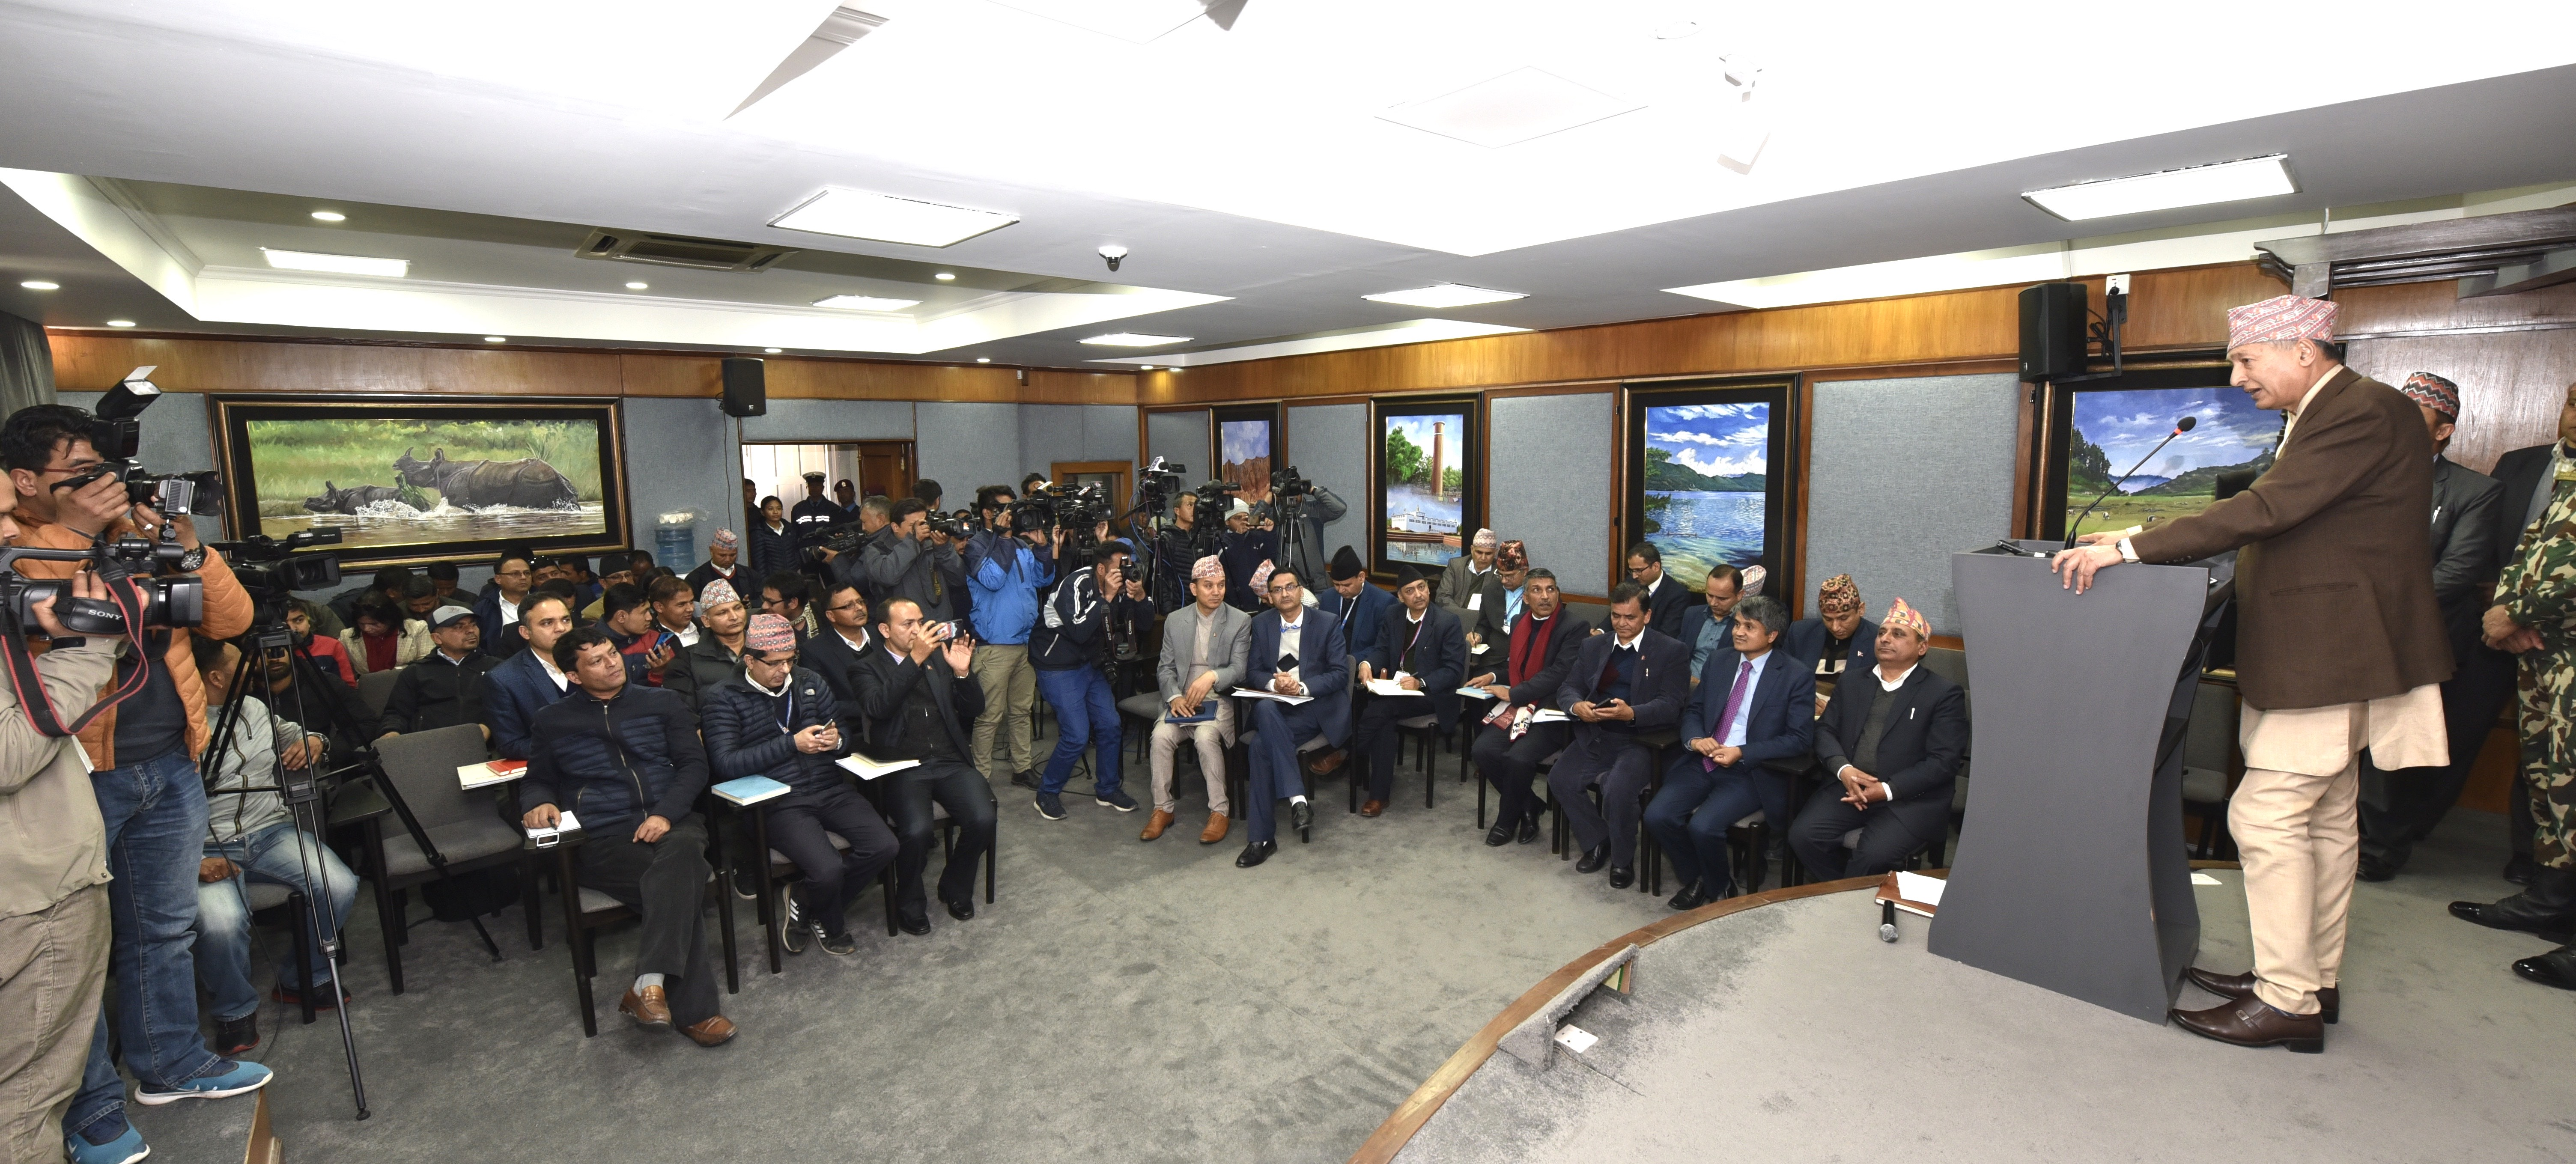 Government Spokesperson Minister Yubaraj Khatiwada addressing mediapersons at the weekly press-meet in Singhadurbar on February 27, 2020. Photo: Ministry of Communication and Information Technology